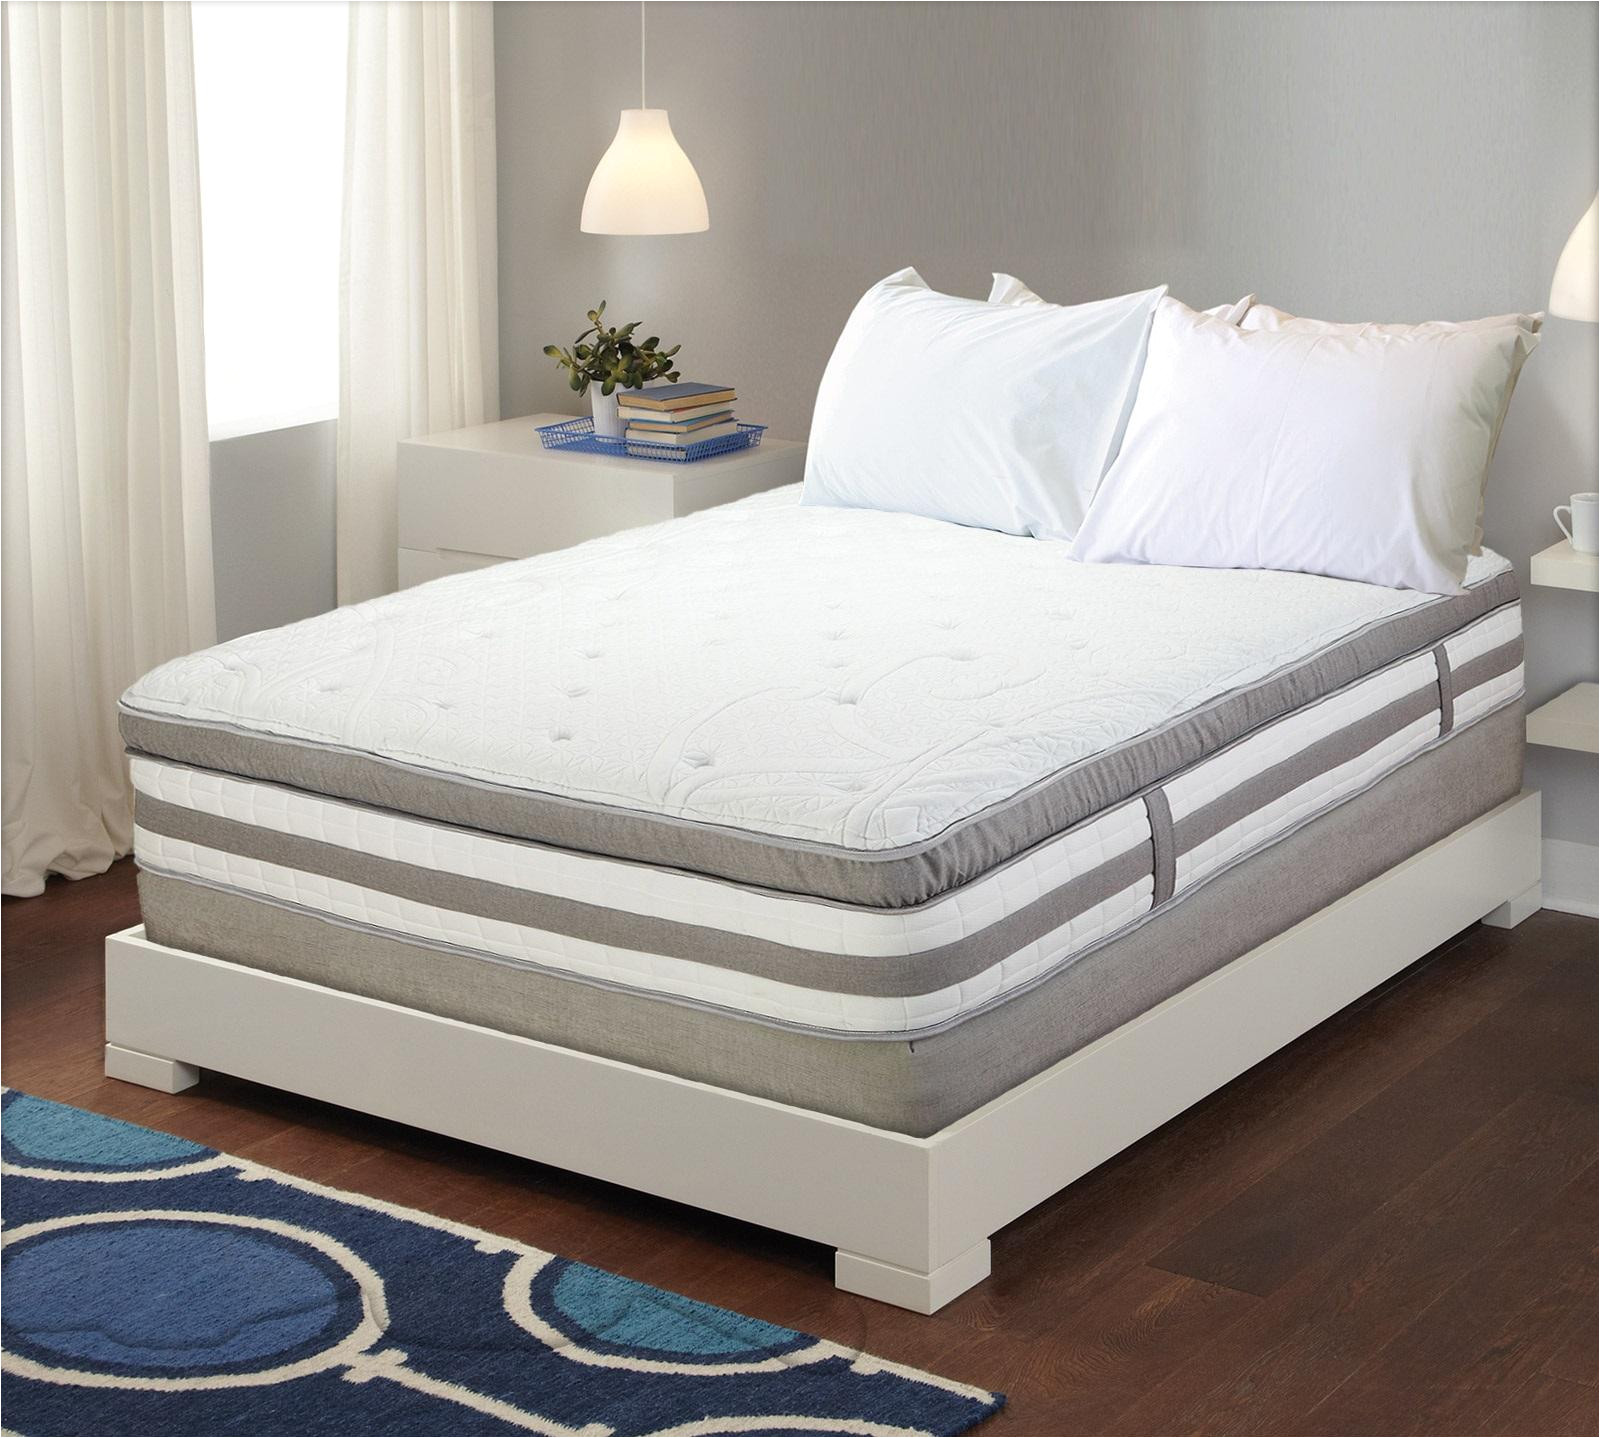 shop web specials from king size bed frame sears